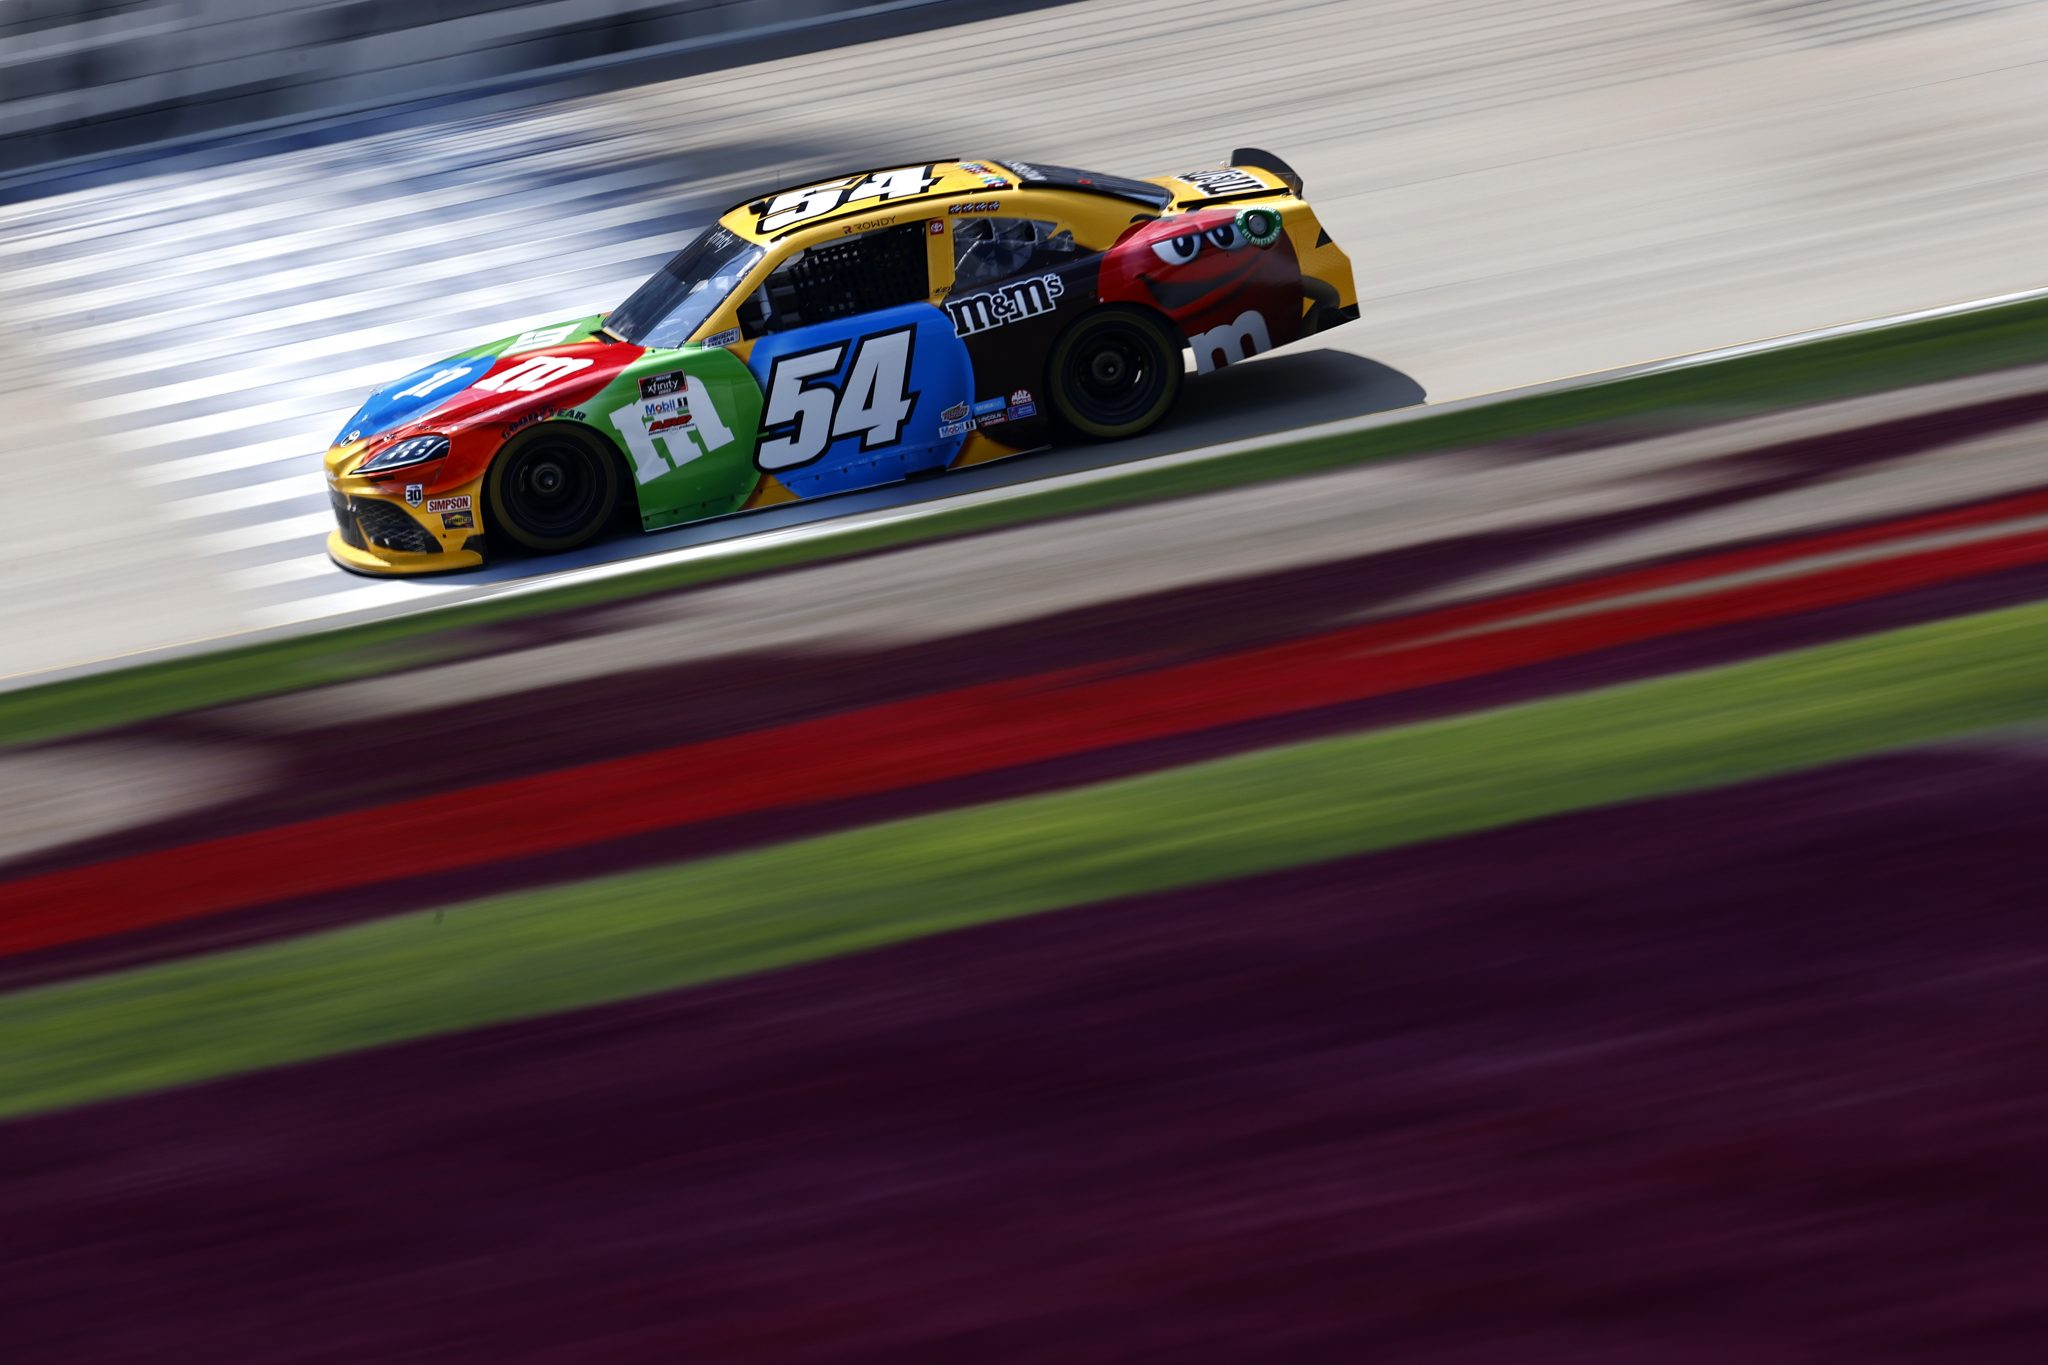 LEBANON, TENNESSEE - JUNE 18: Kyle Busch, driver of the #54 M&M's Toyota, drives during practice for the NASCAR Xfinity Series Tennessee Lottery 250 at Nashville Superspeedway on June 18, 2021 in Lebanon, Tennessee. (Photo by Jared C. Tilton/Getty Images) | Getty Images